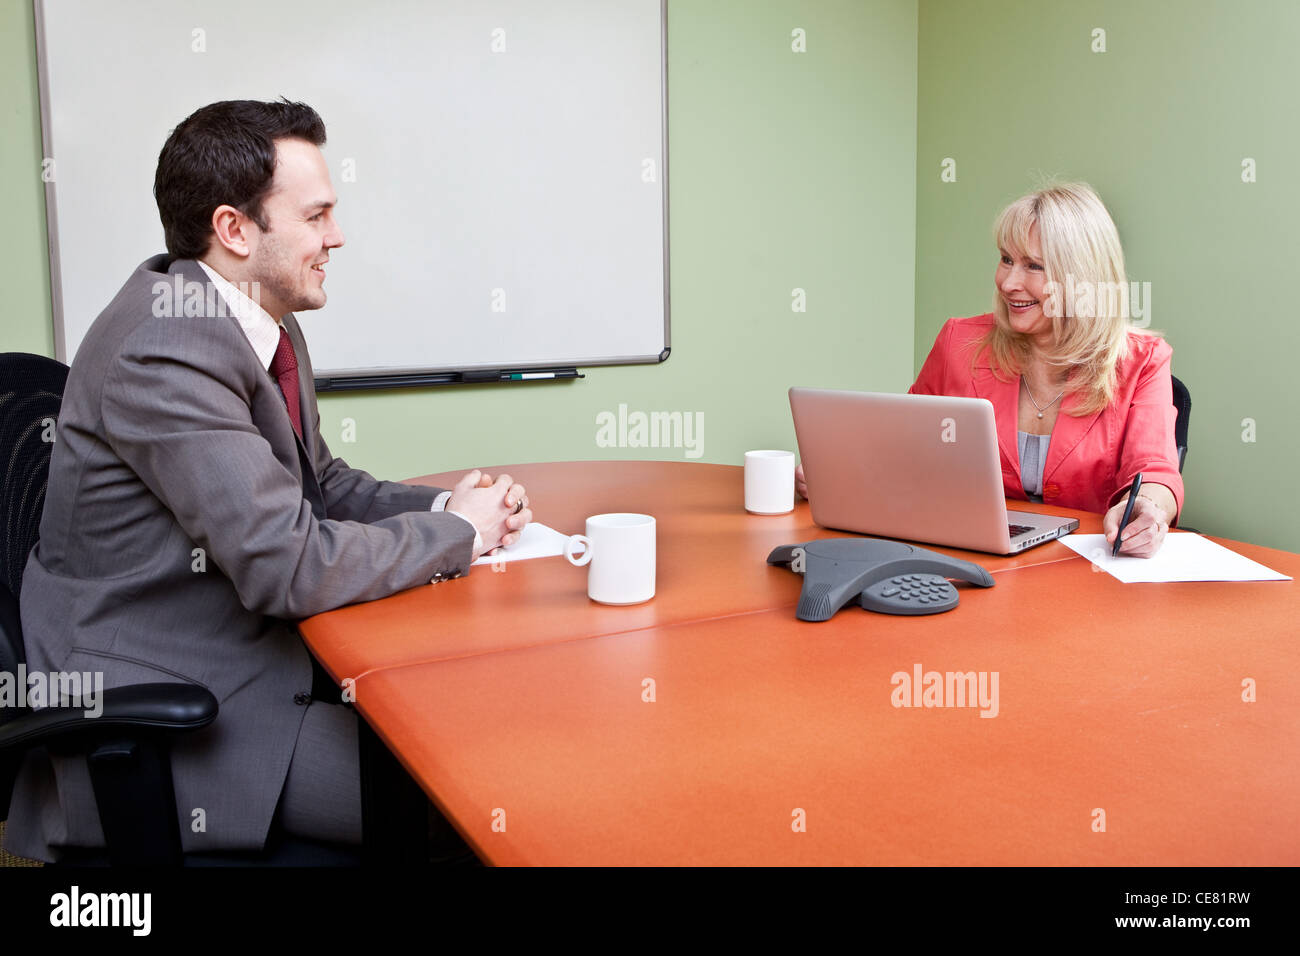 Job Interview - Stock Image